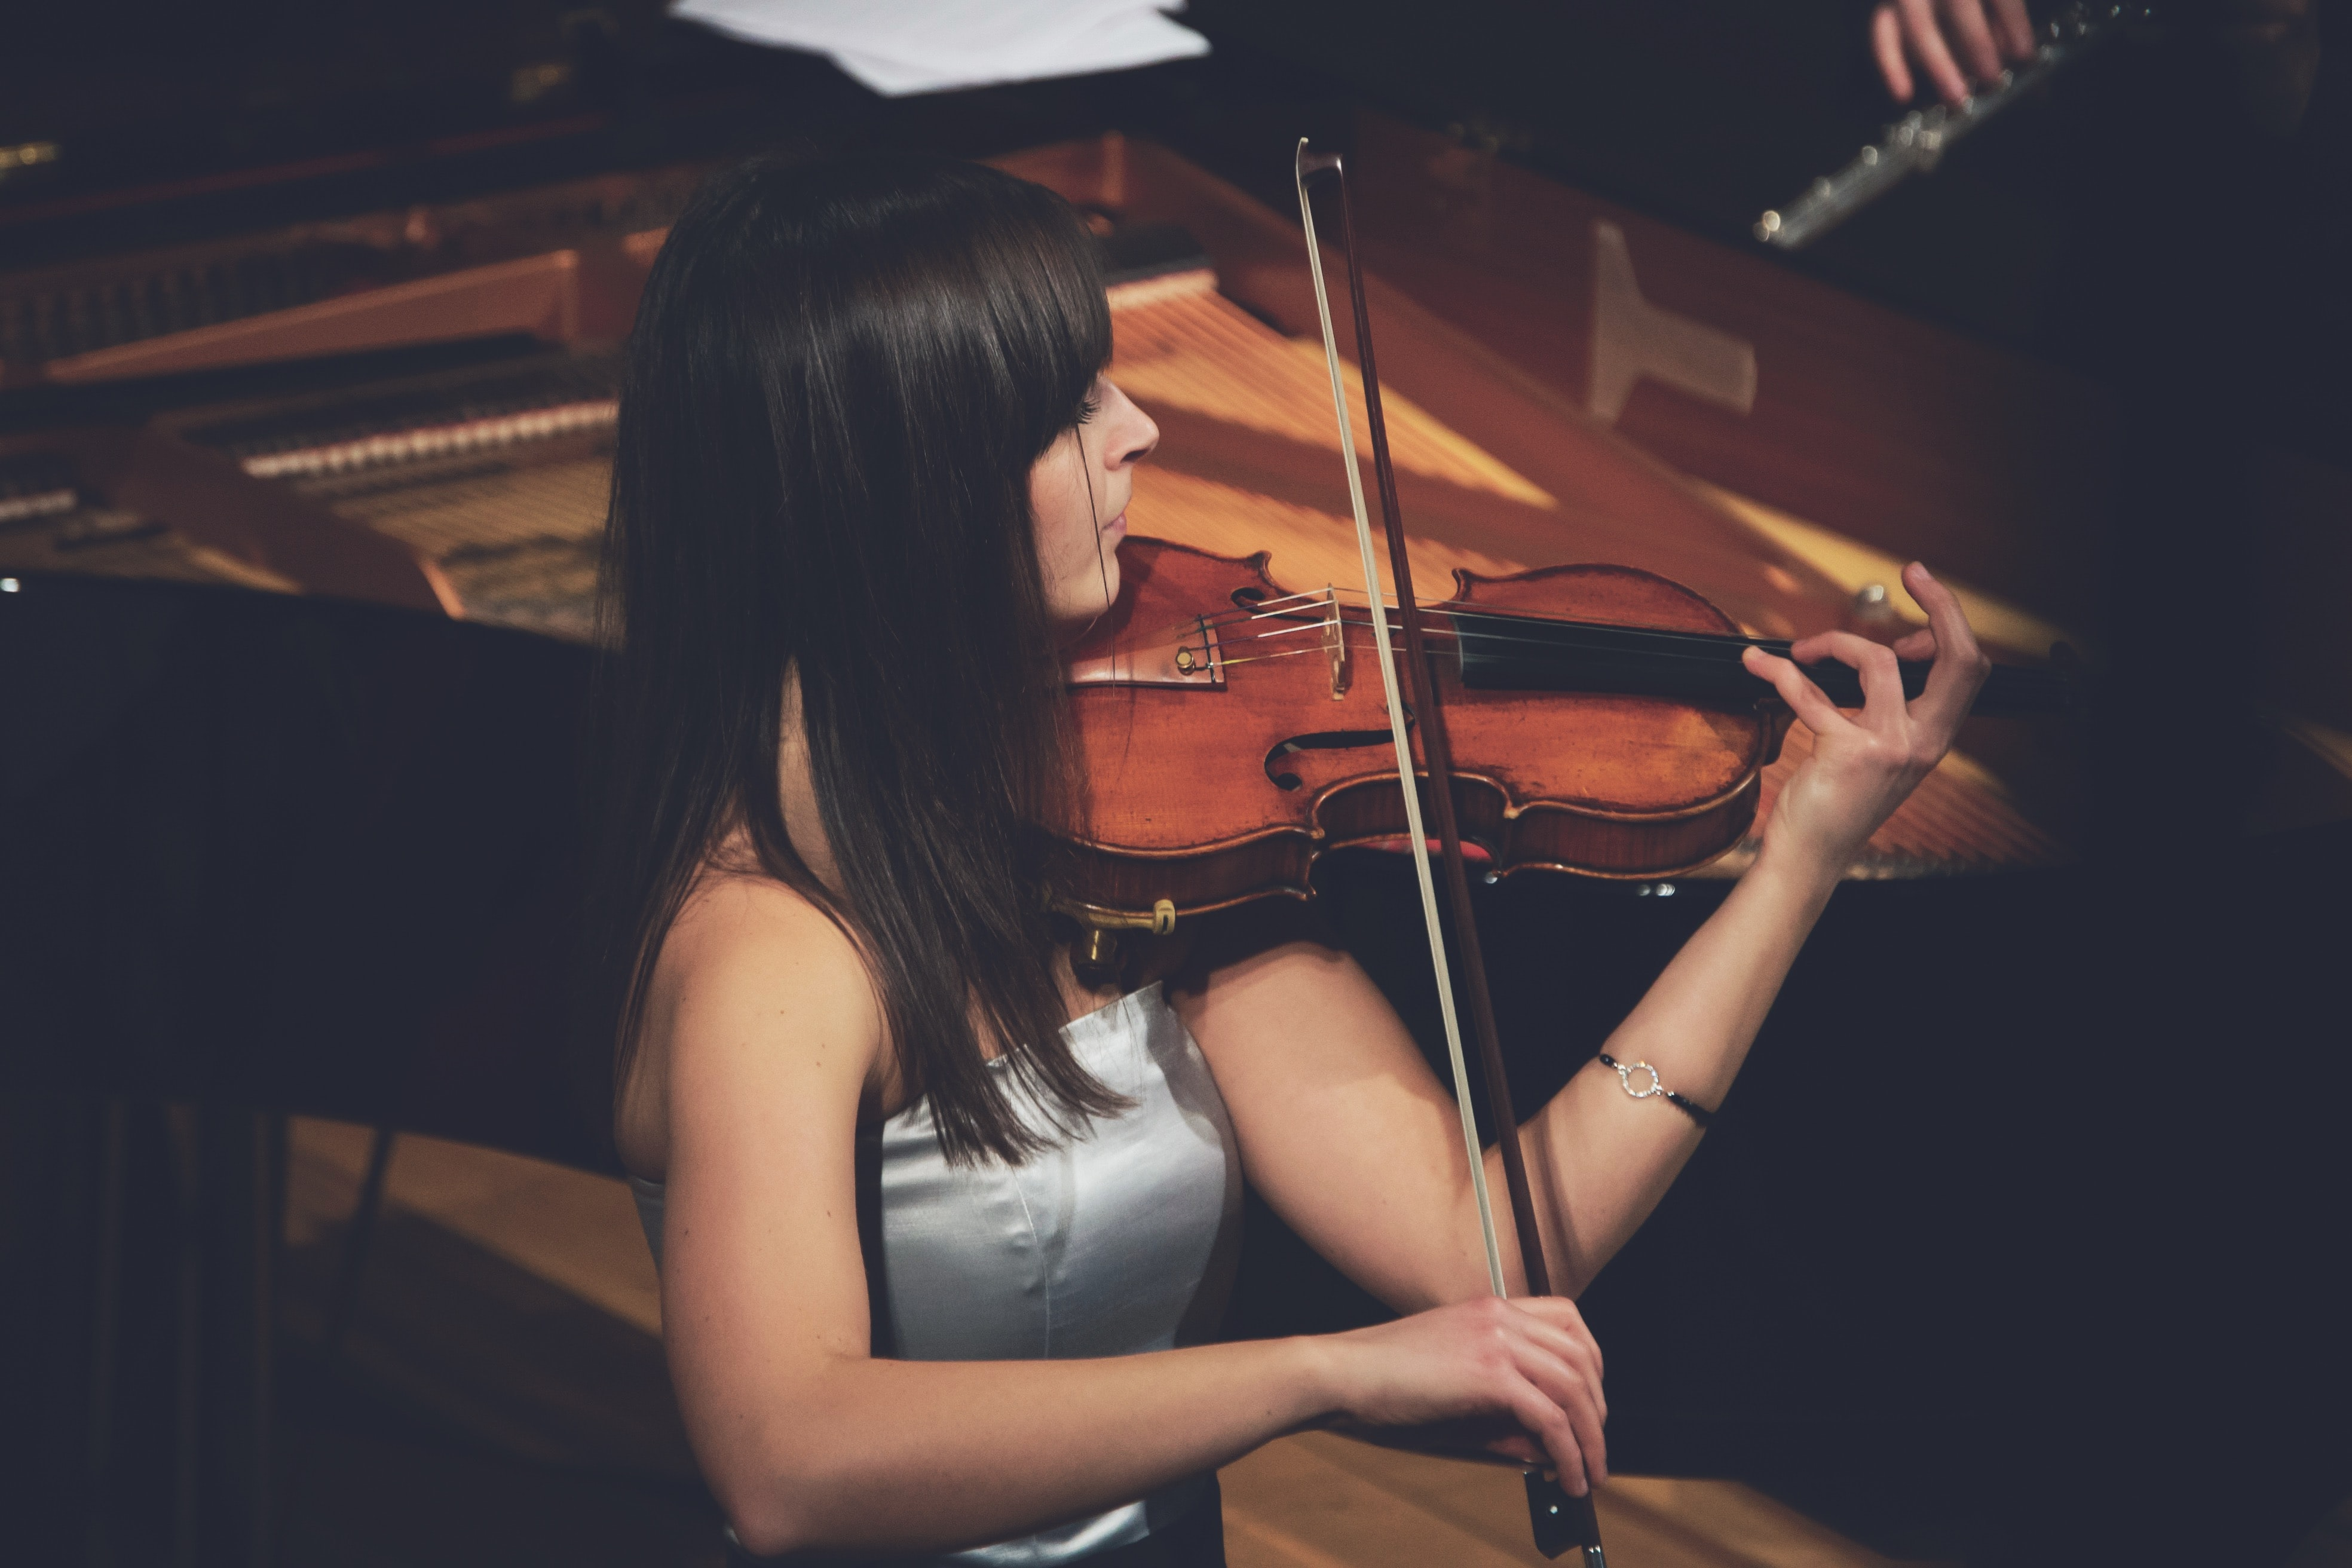 A dark-haired woman playing the violin in front of a piano in Montichiari